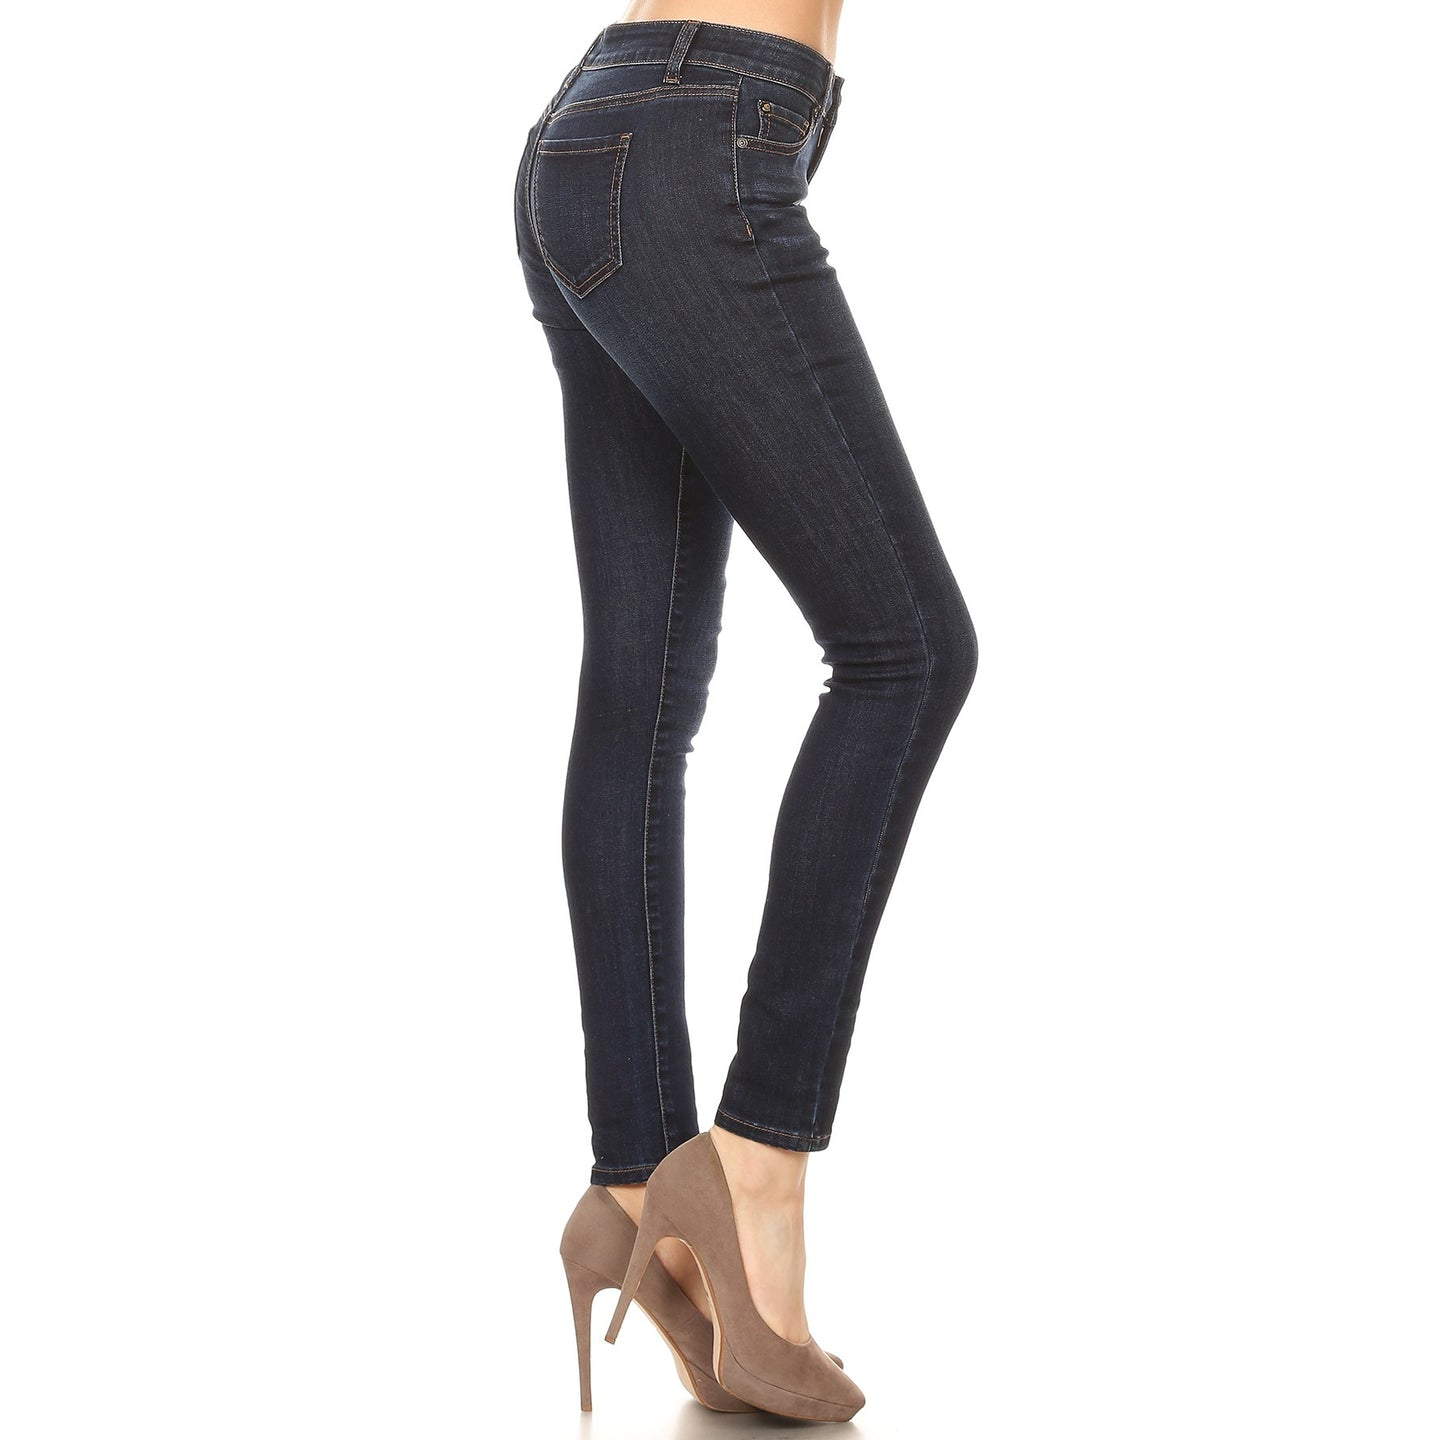 Let's Go Shopping Stretch Skinny Jeans in Dark Wash